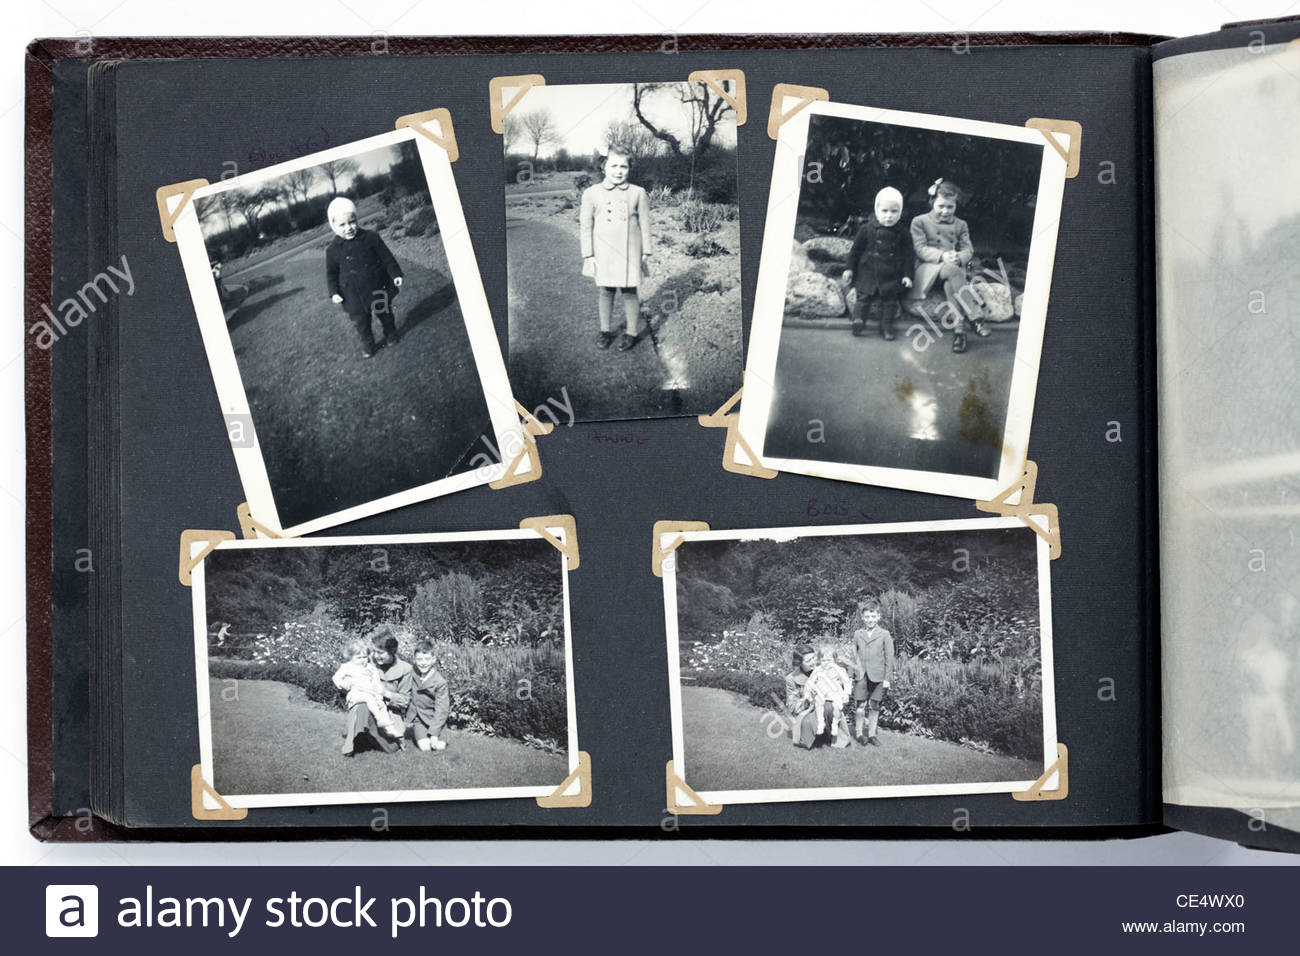 Old Photo Album With Vintage Images From The 1950s Stock Photo